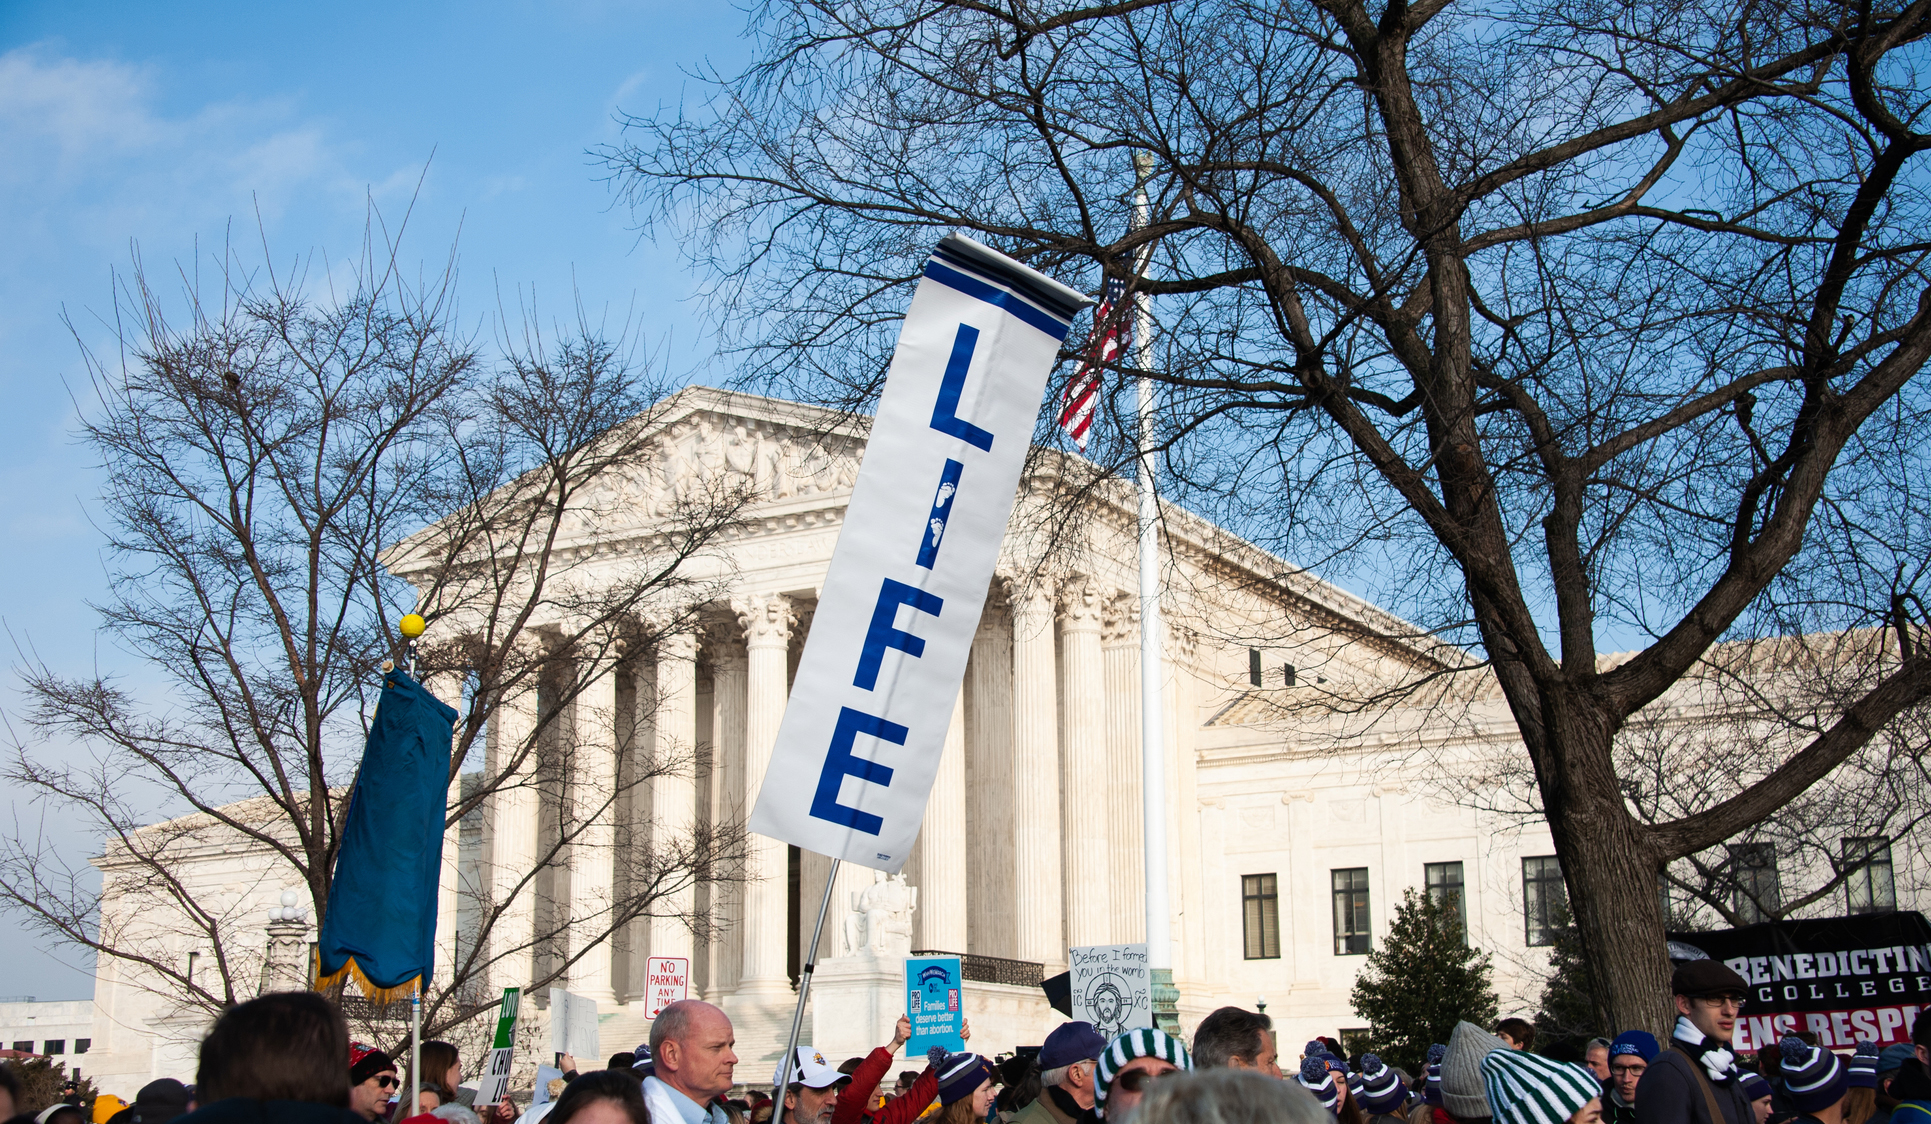 Marchers carry signs at U.S. Supreme Court